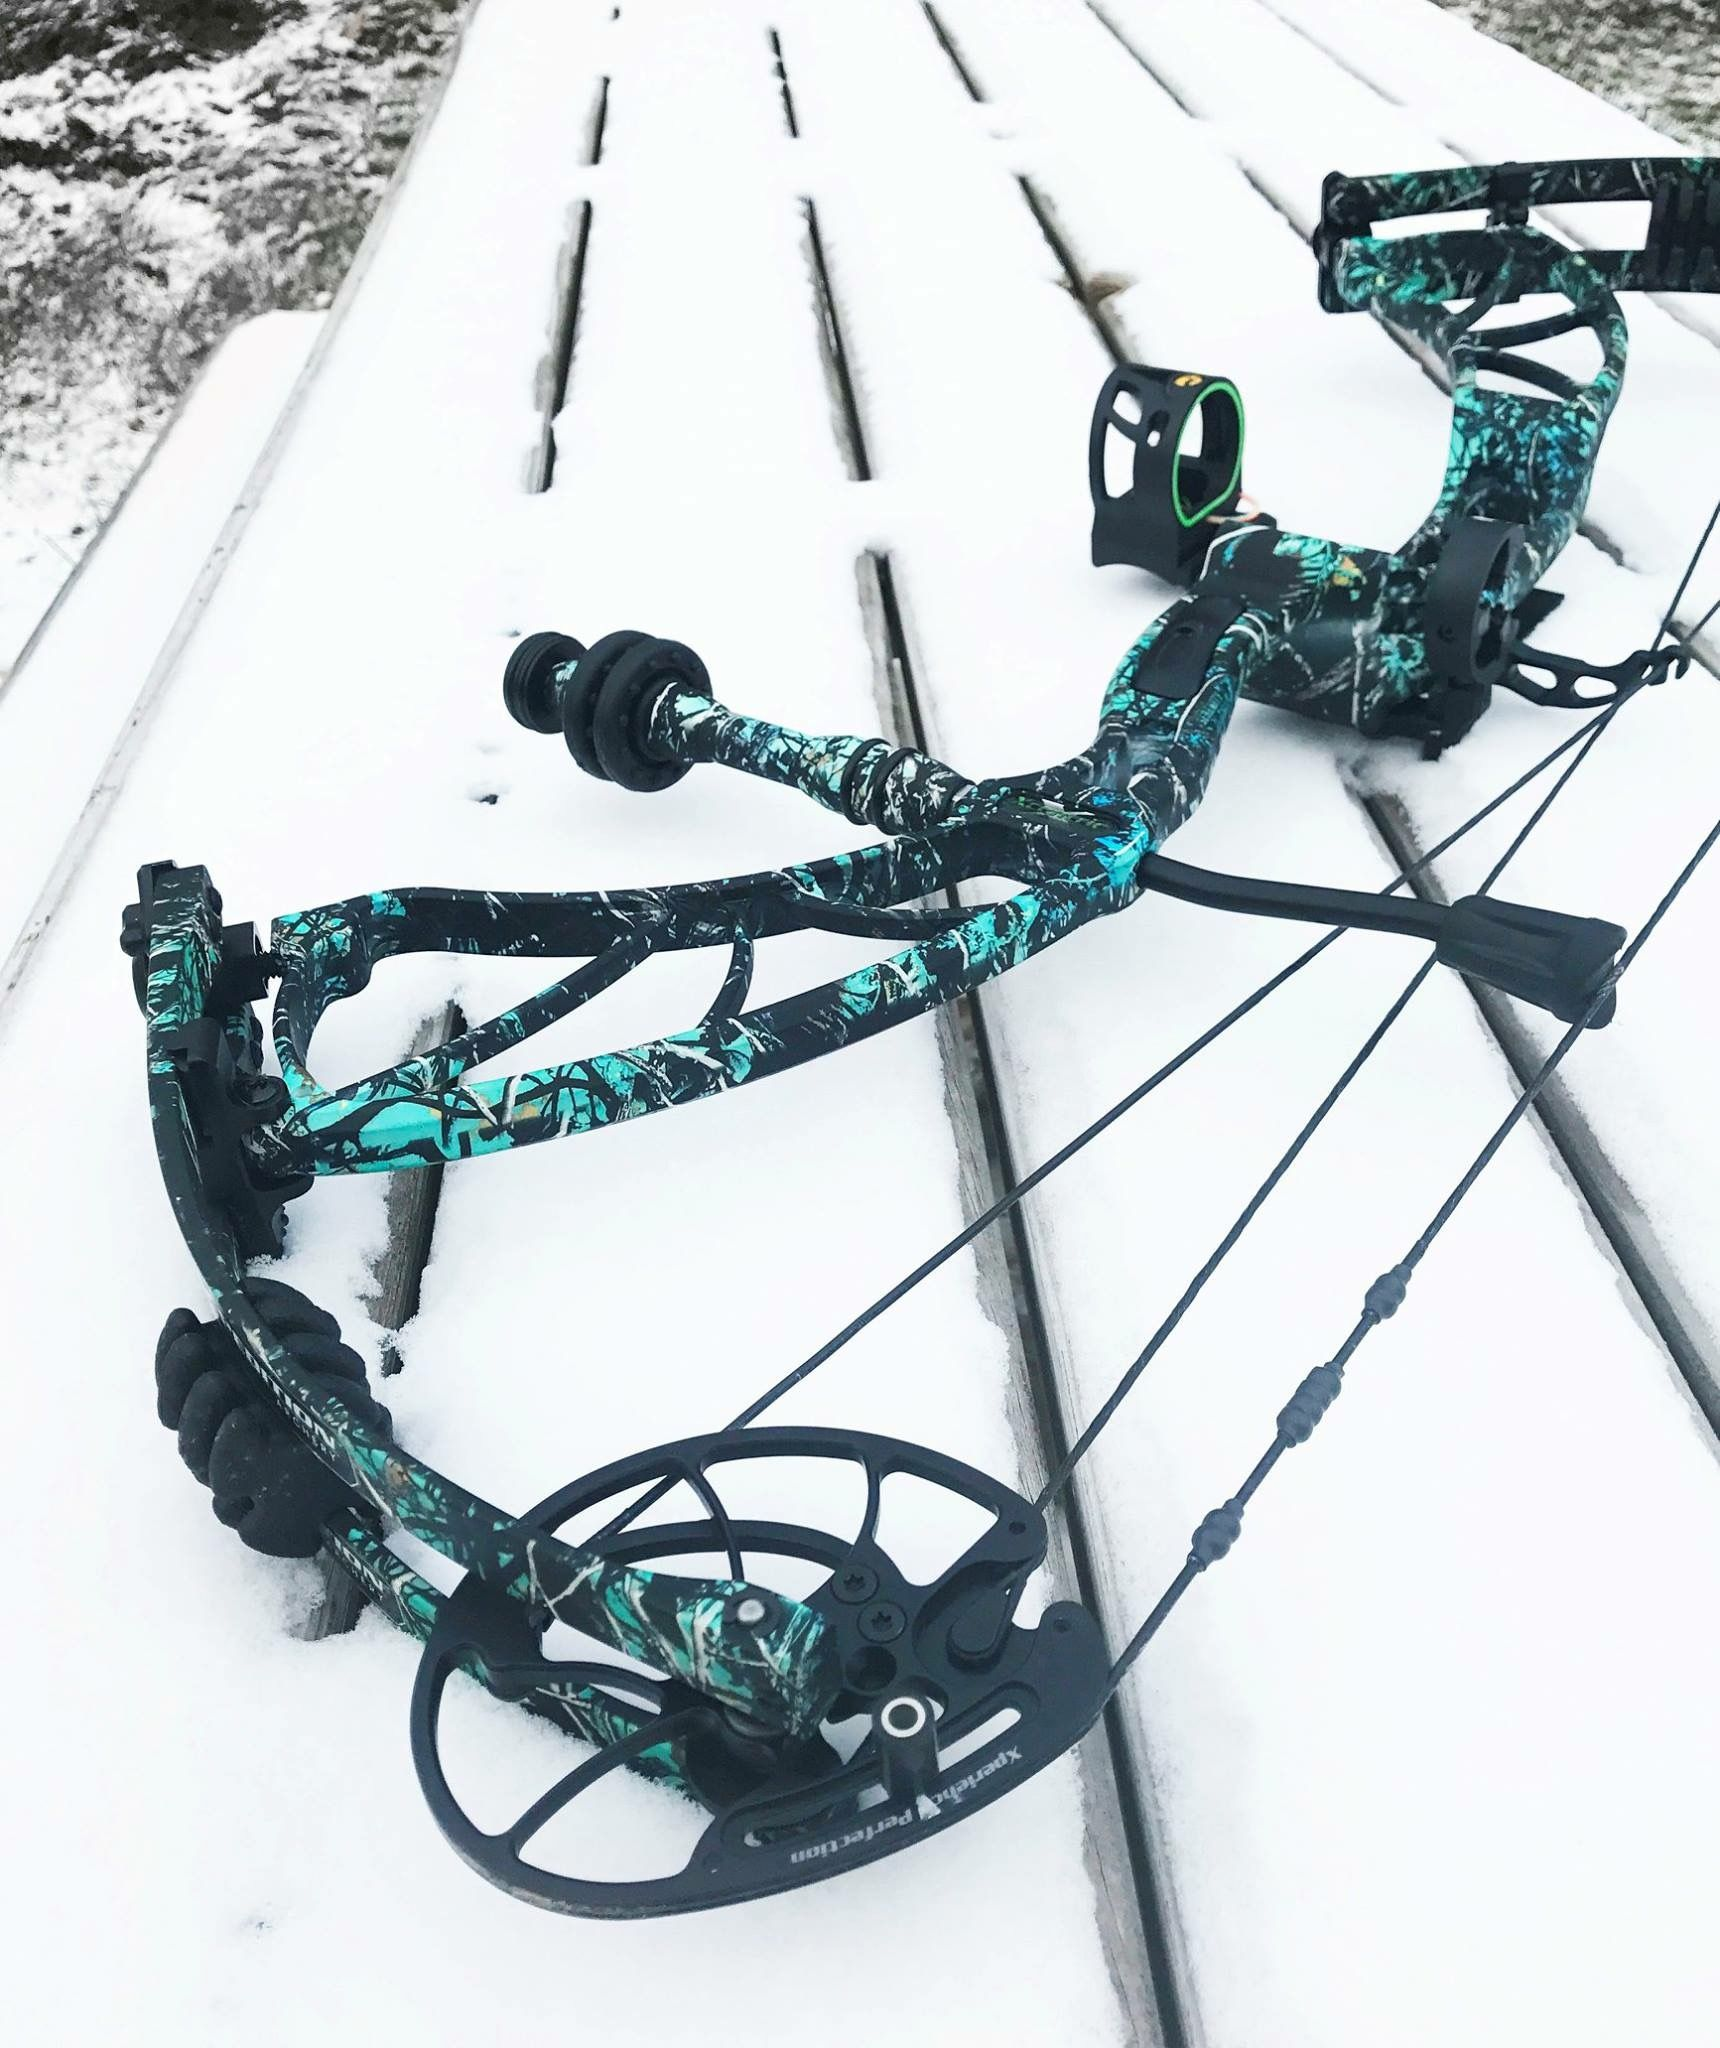 Muddy Girl Serenity Girls Hunt Too Bow Hunting Bows Archery